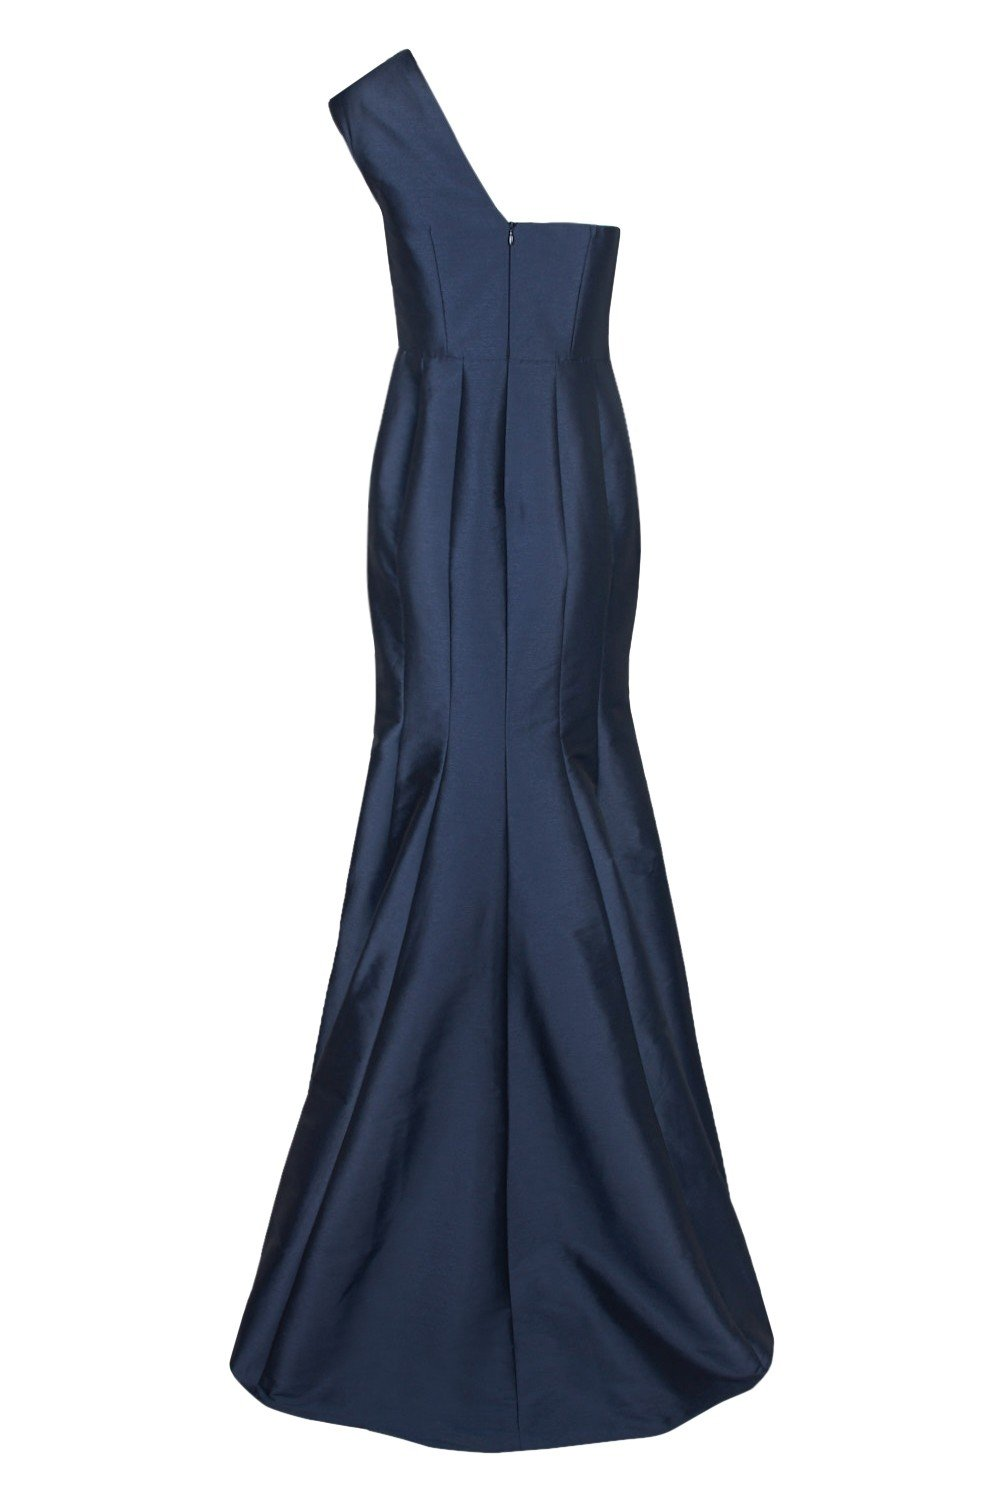 Adrianna Papell - AP1E204211 One Shoulder Taffeta Trumpet Gown In Blue